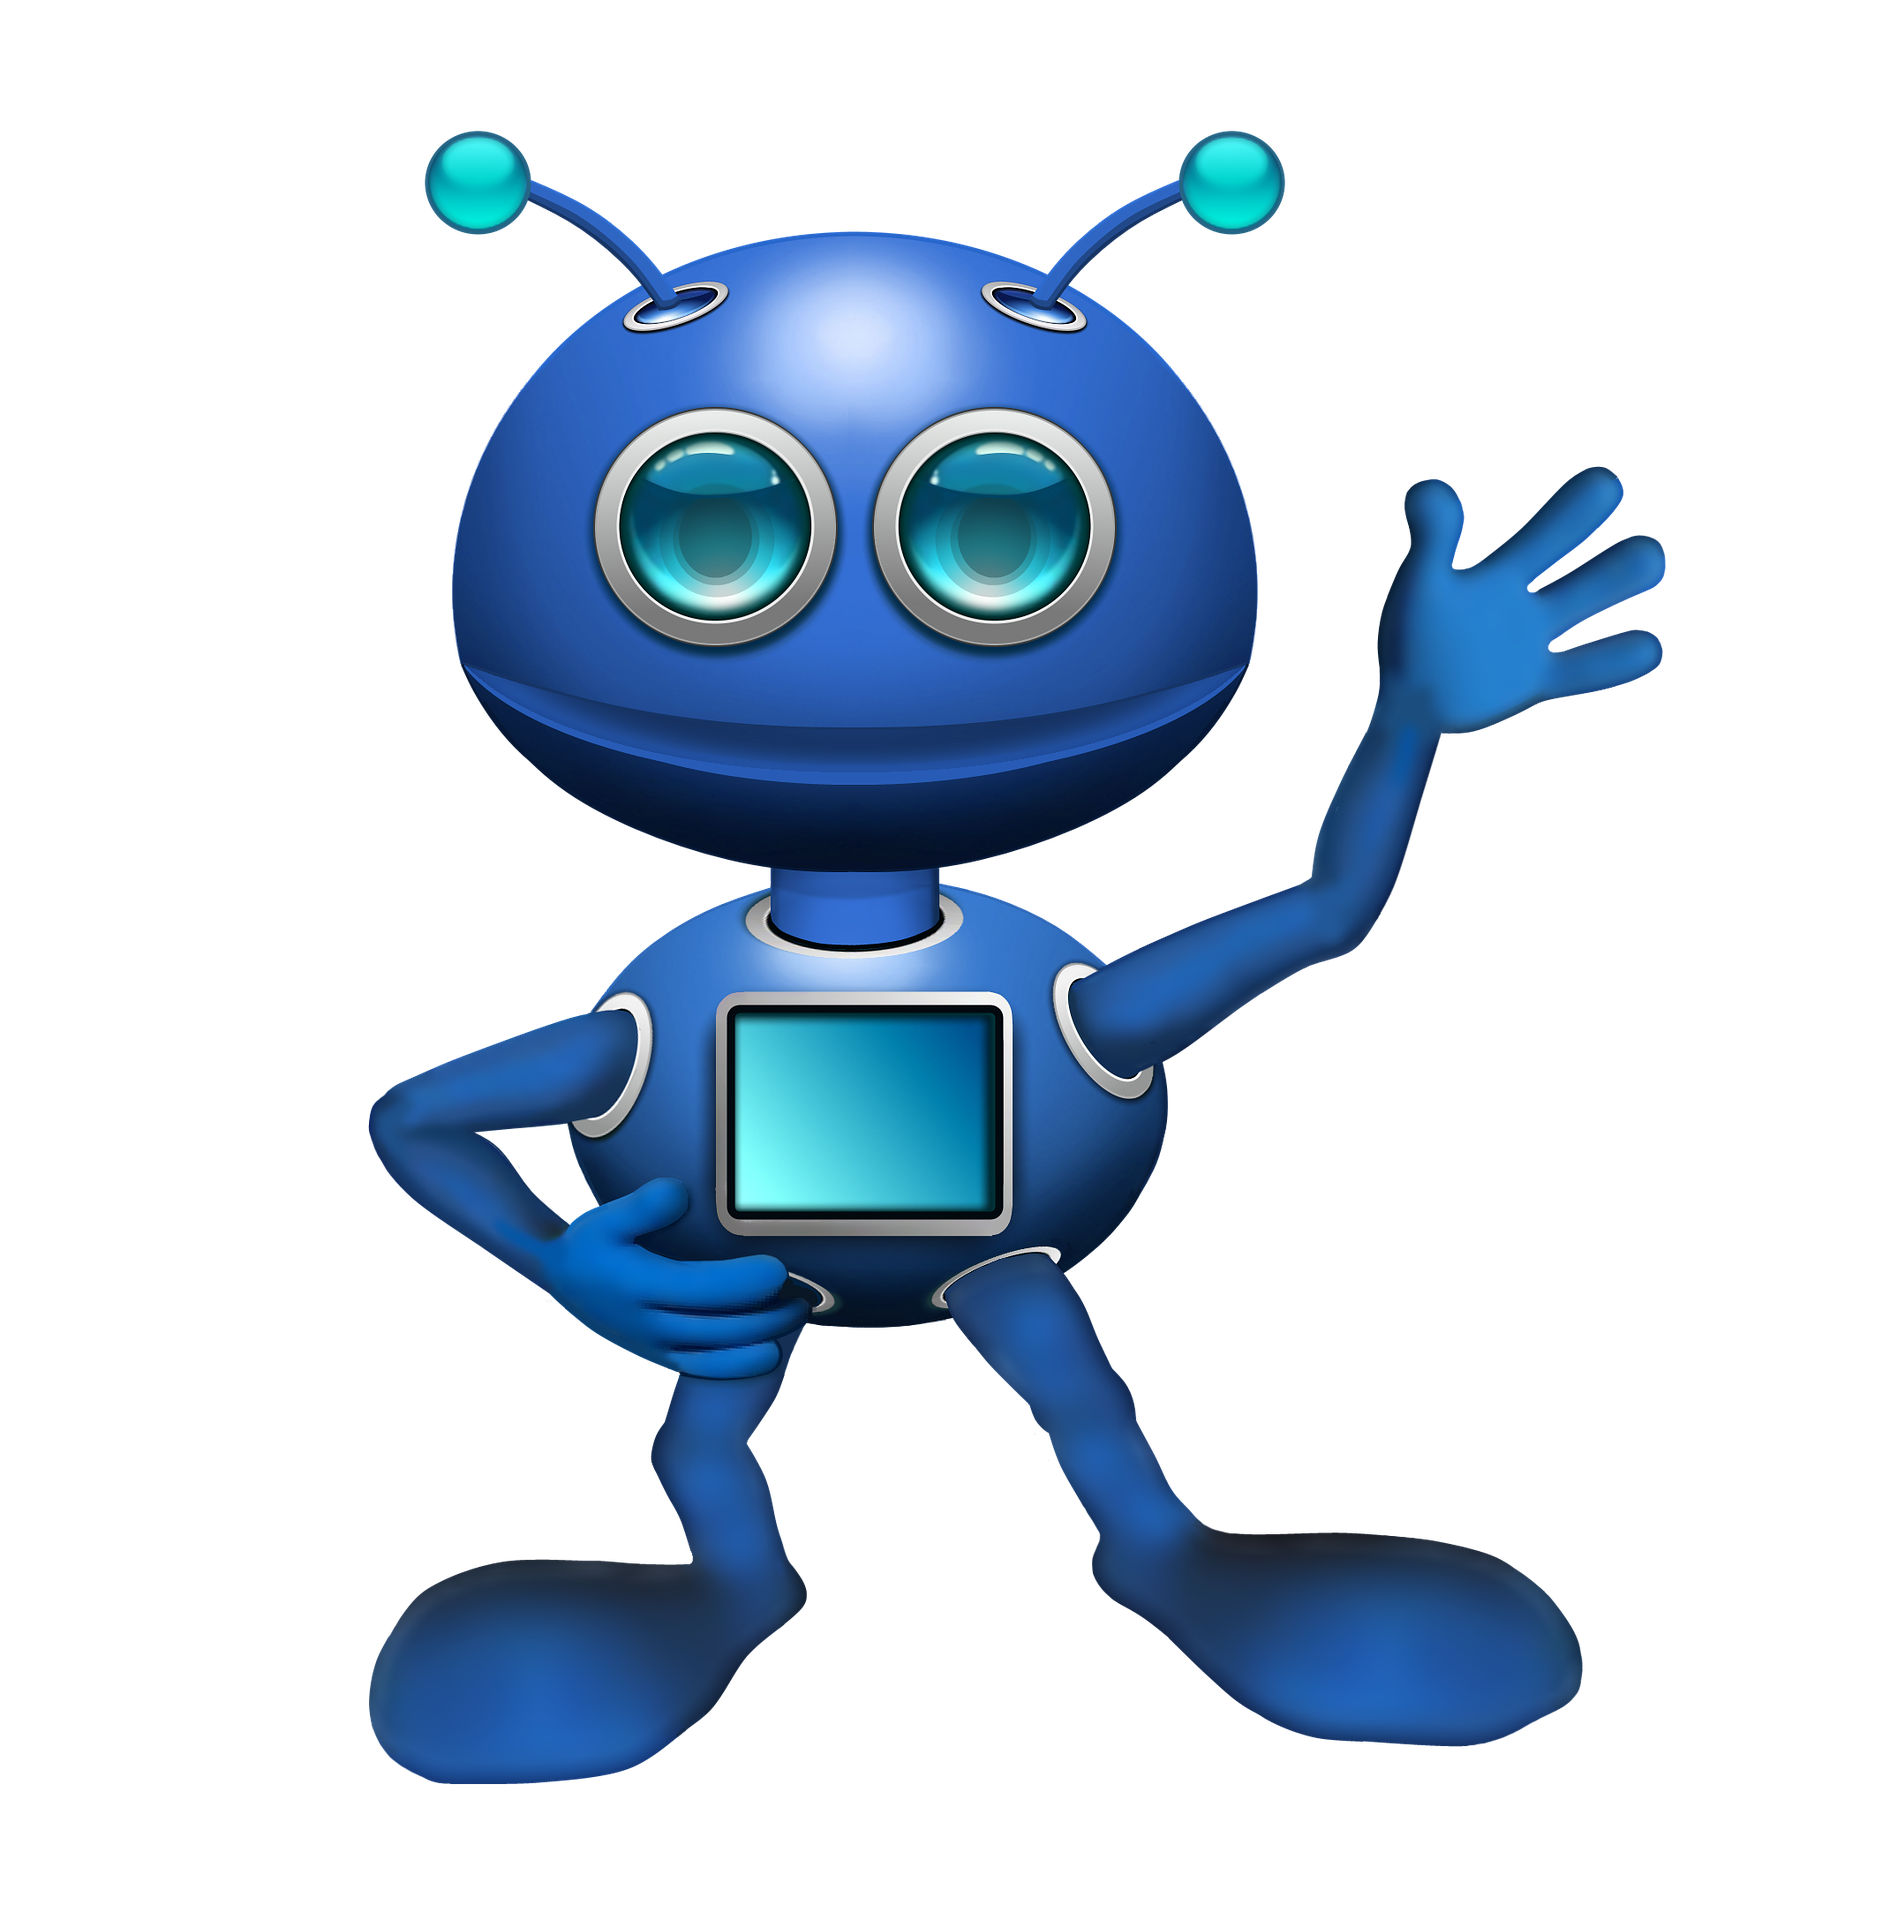 alien-android-robot